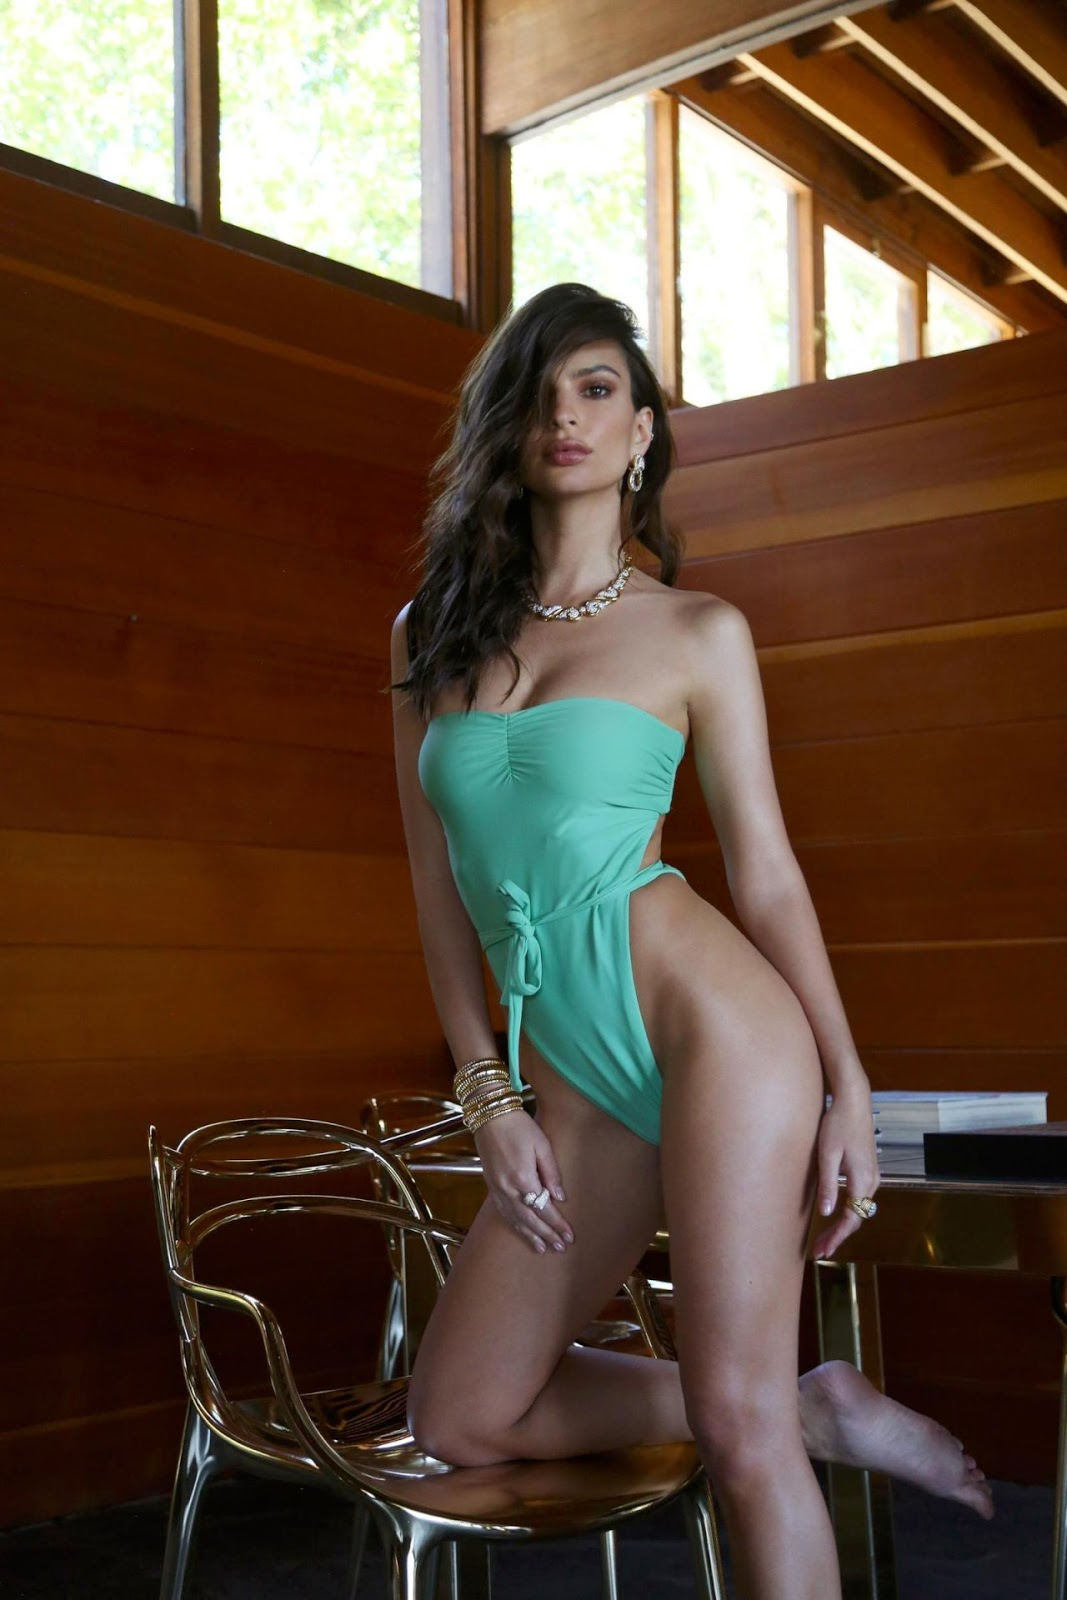 Emily Ratajkowski showcased her latest swimwear designs in an effective style